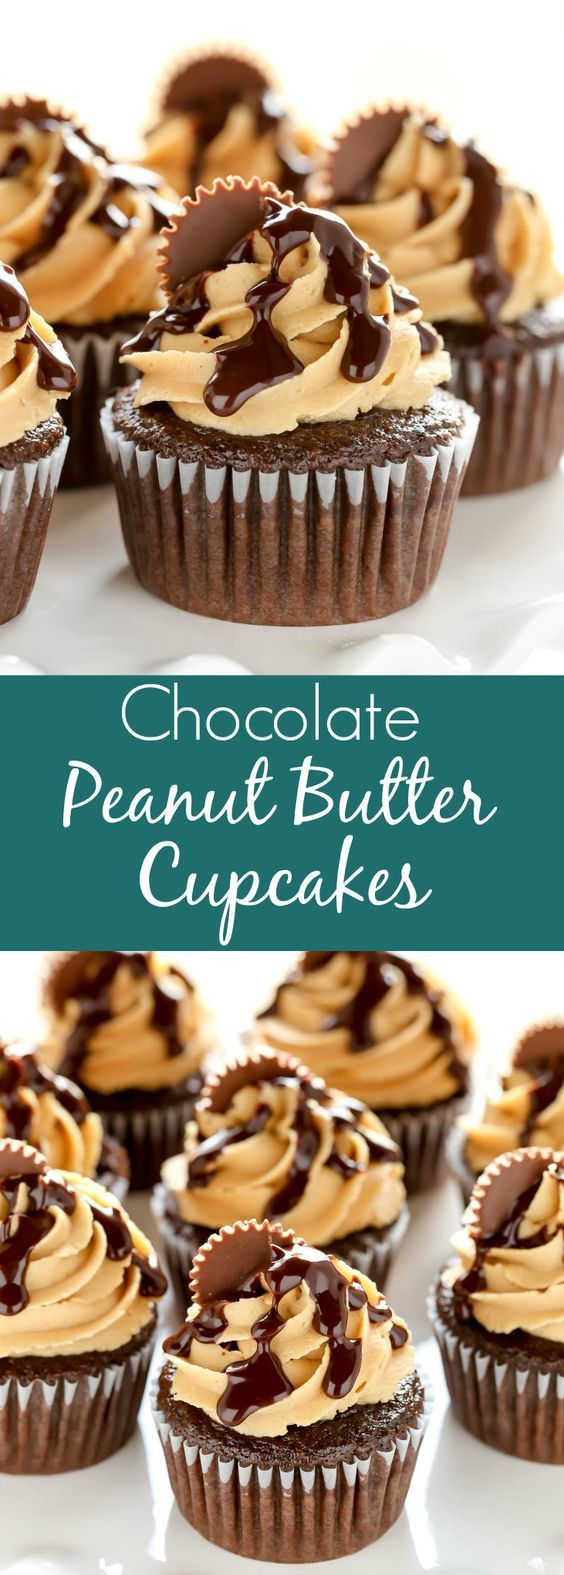 chocolate cupcakes with peanut butter frosting dipped in chocolate